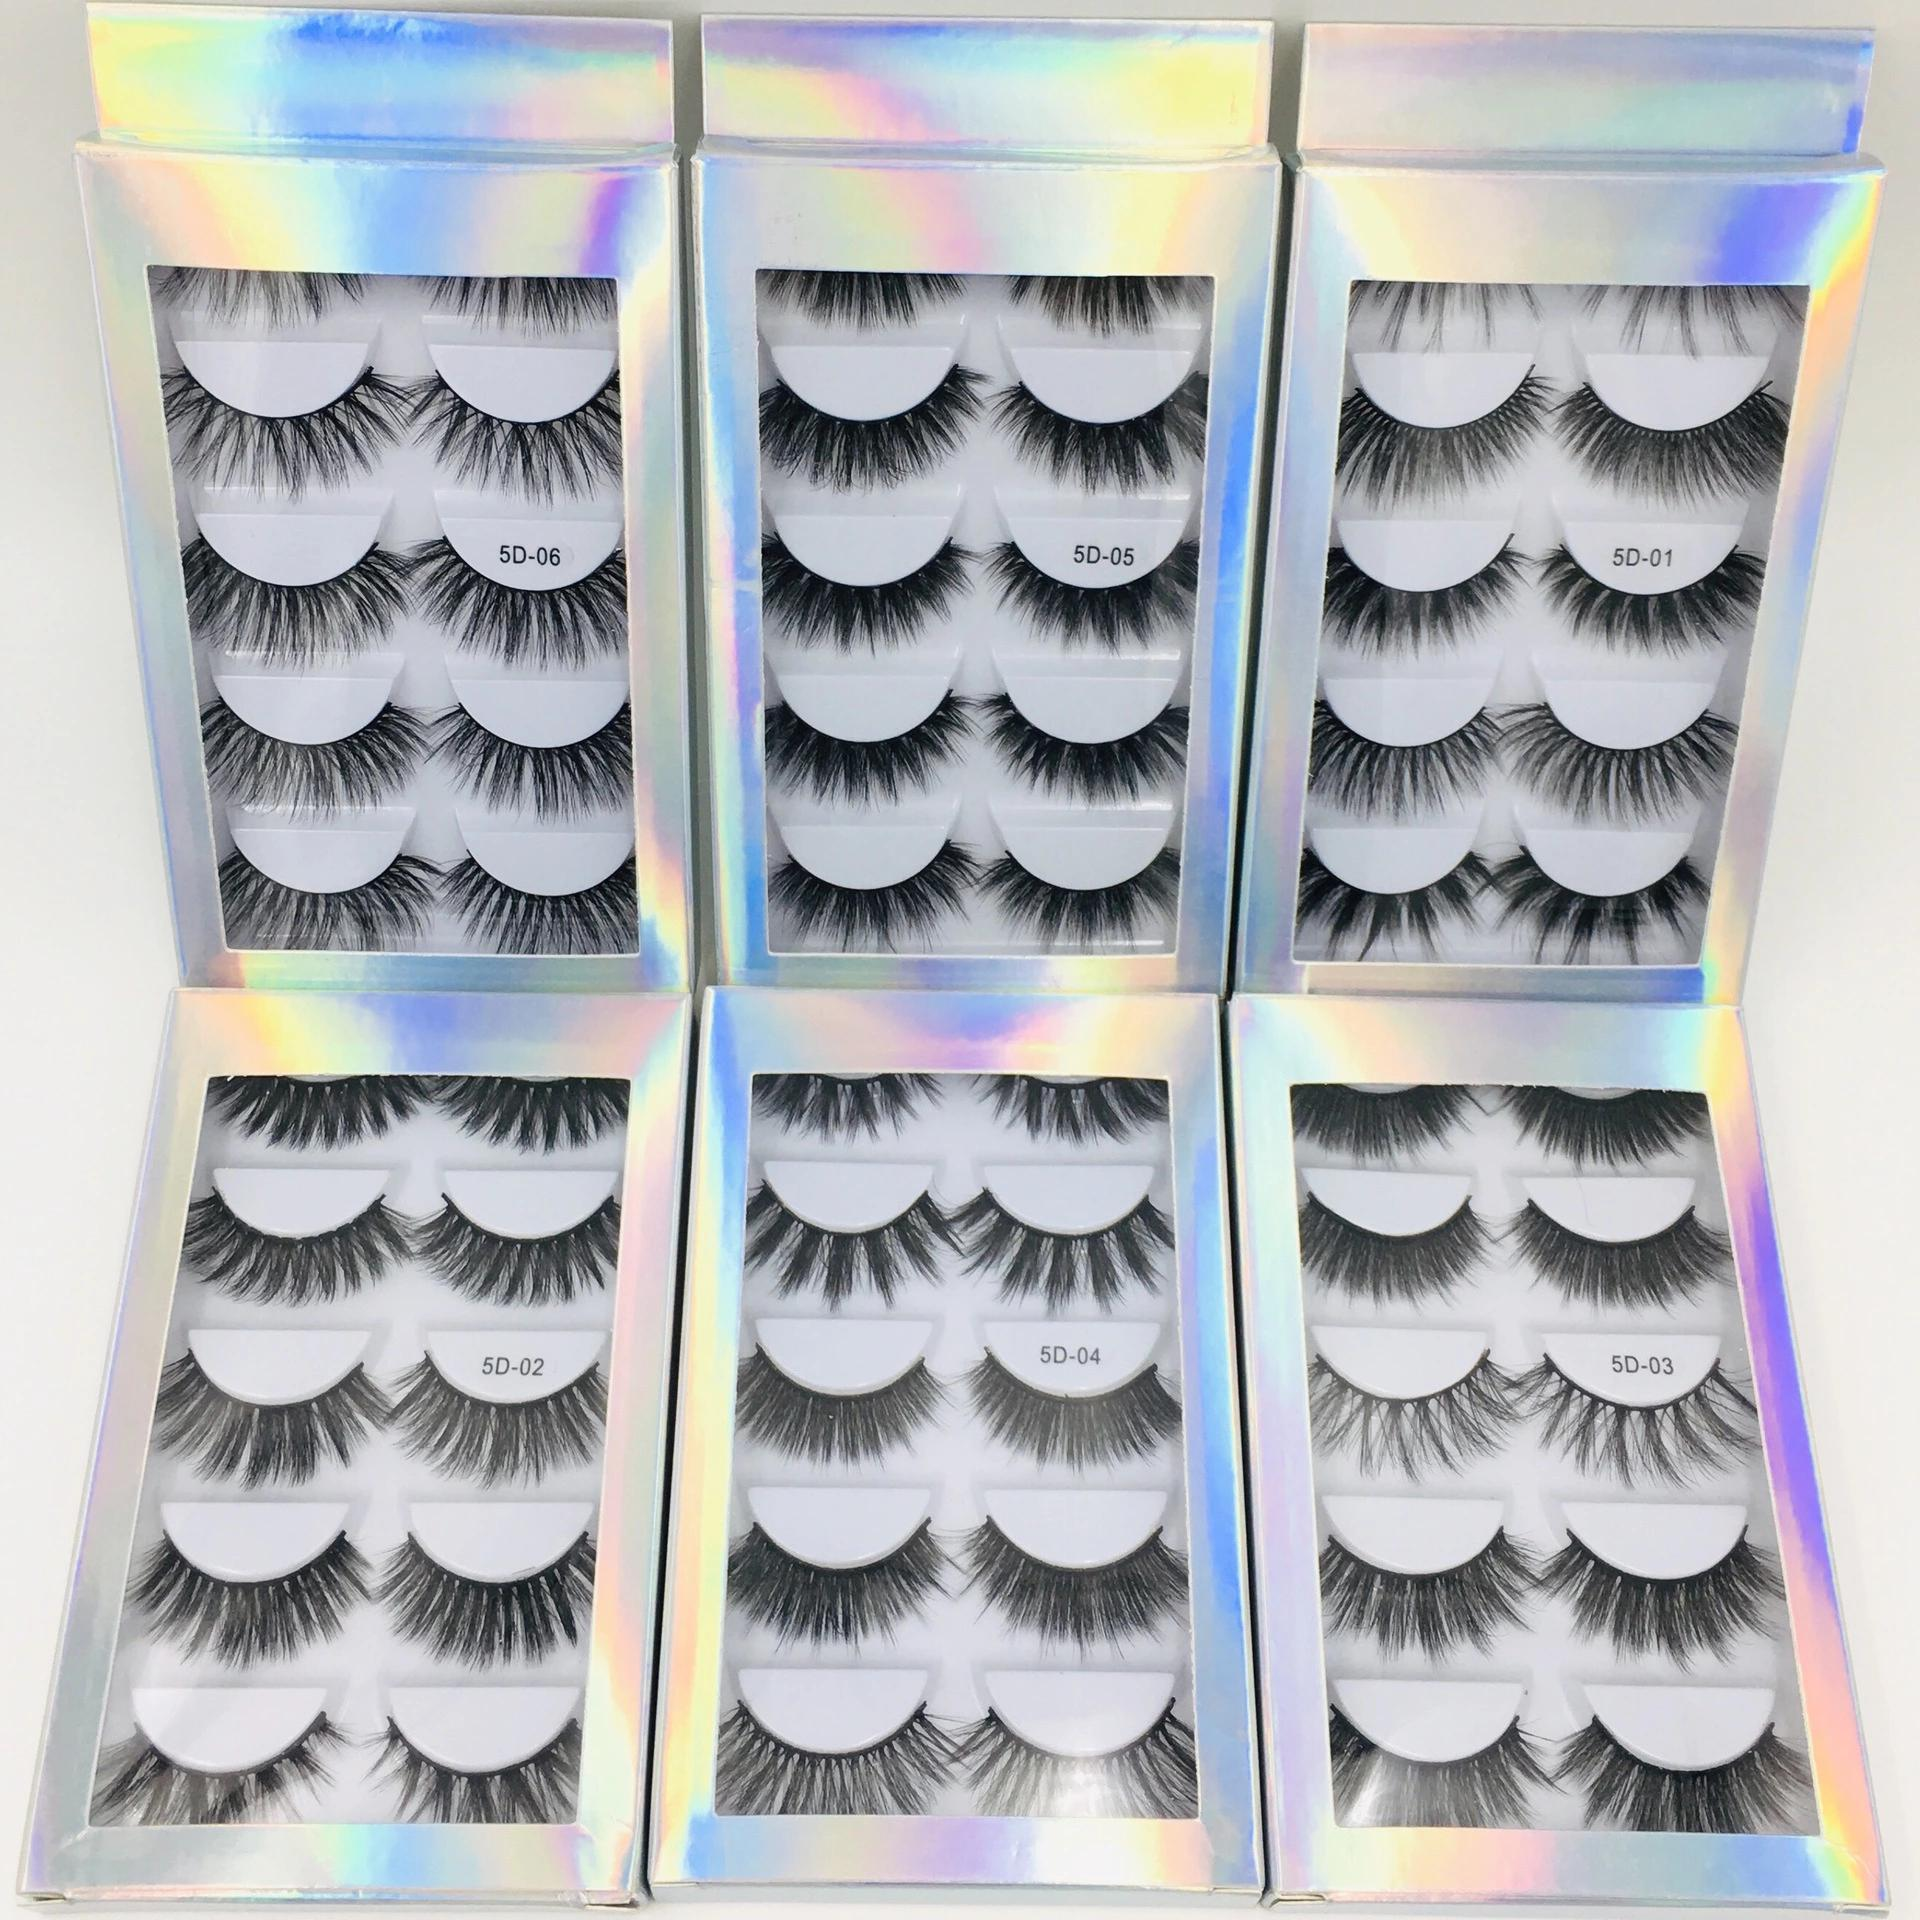 5pairs Multipack 3D Soft Mink Hair Handmade False Eyelashes Fluffy Long Eyelashes Natural Eye Makeup Tools Eye Imitation Eyelash